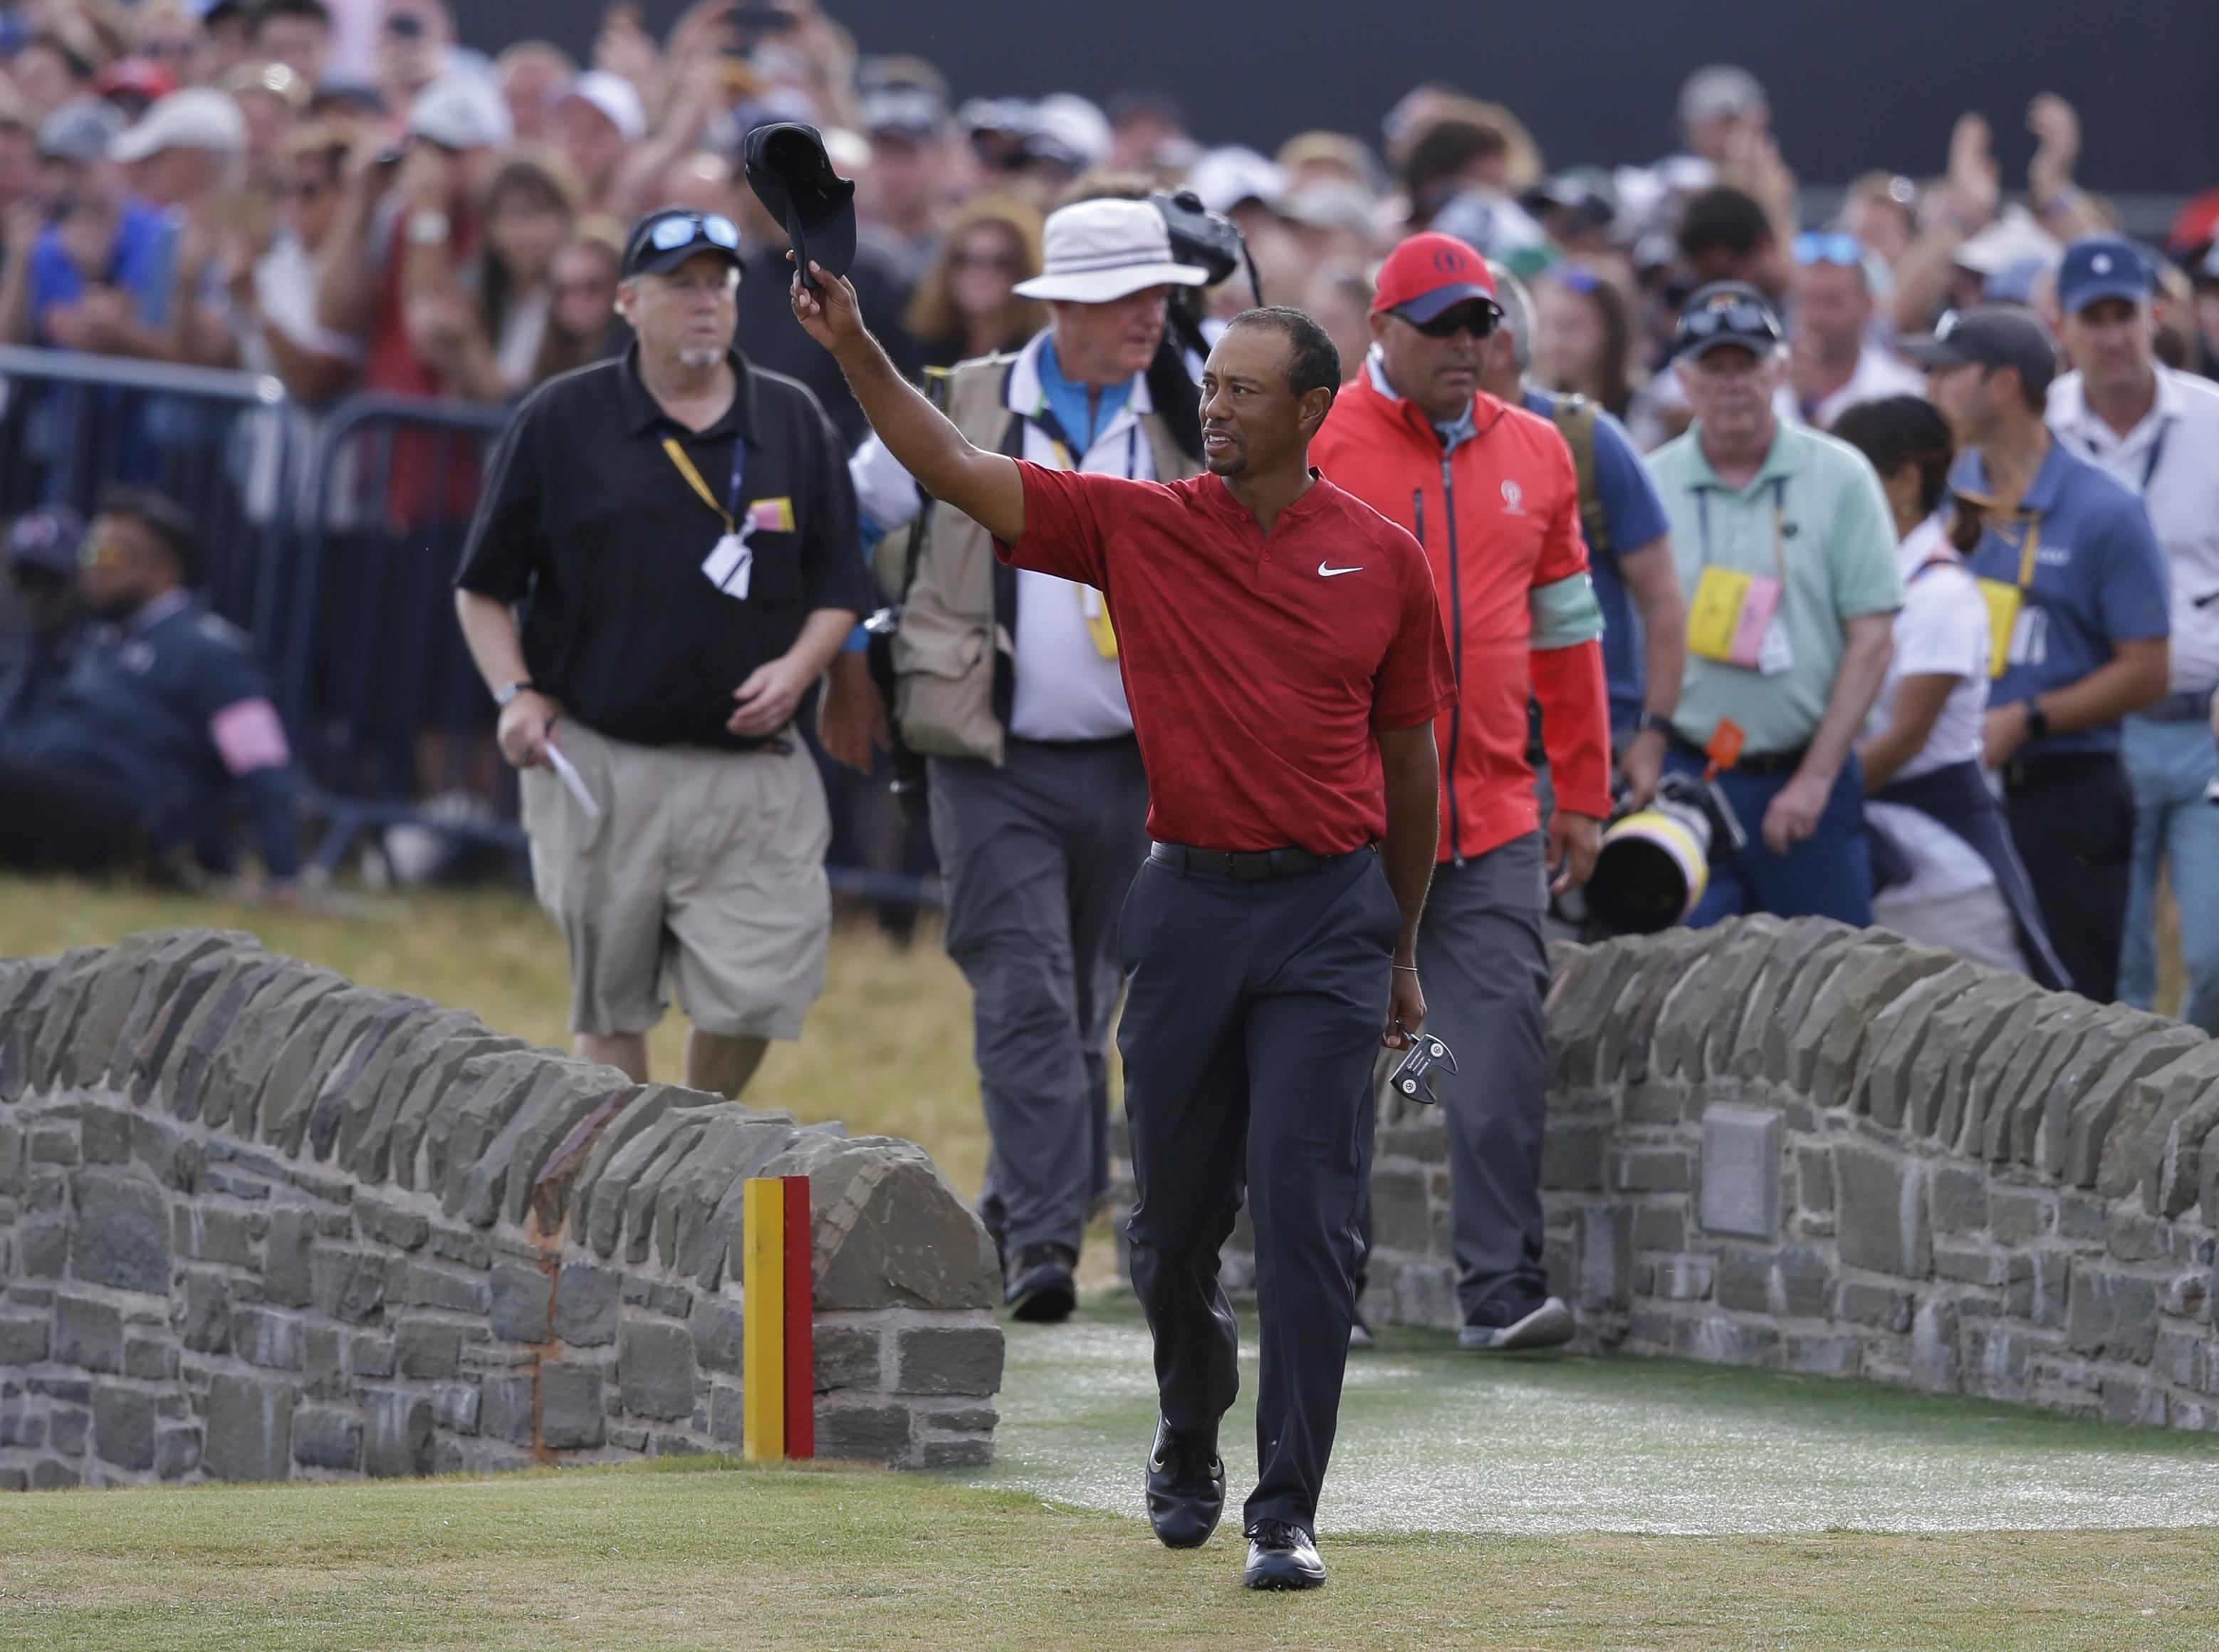 Woods is yet to win a major since beating Rocco Mediate for the US Open in 2008